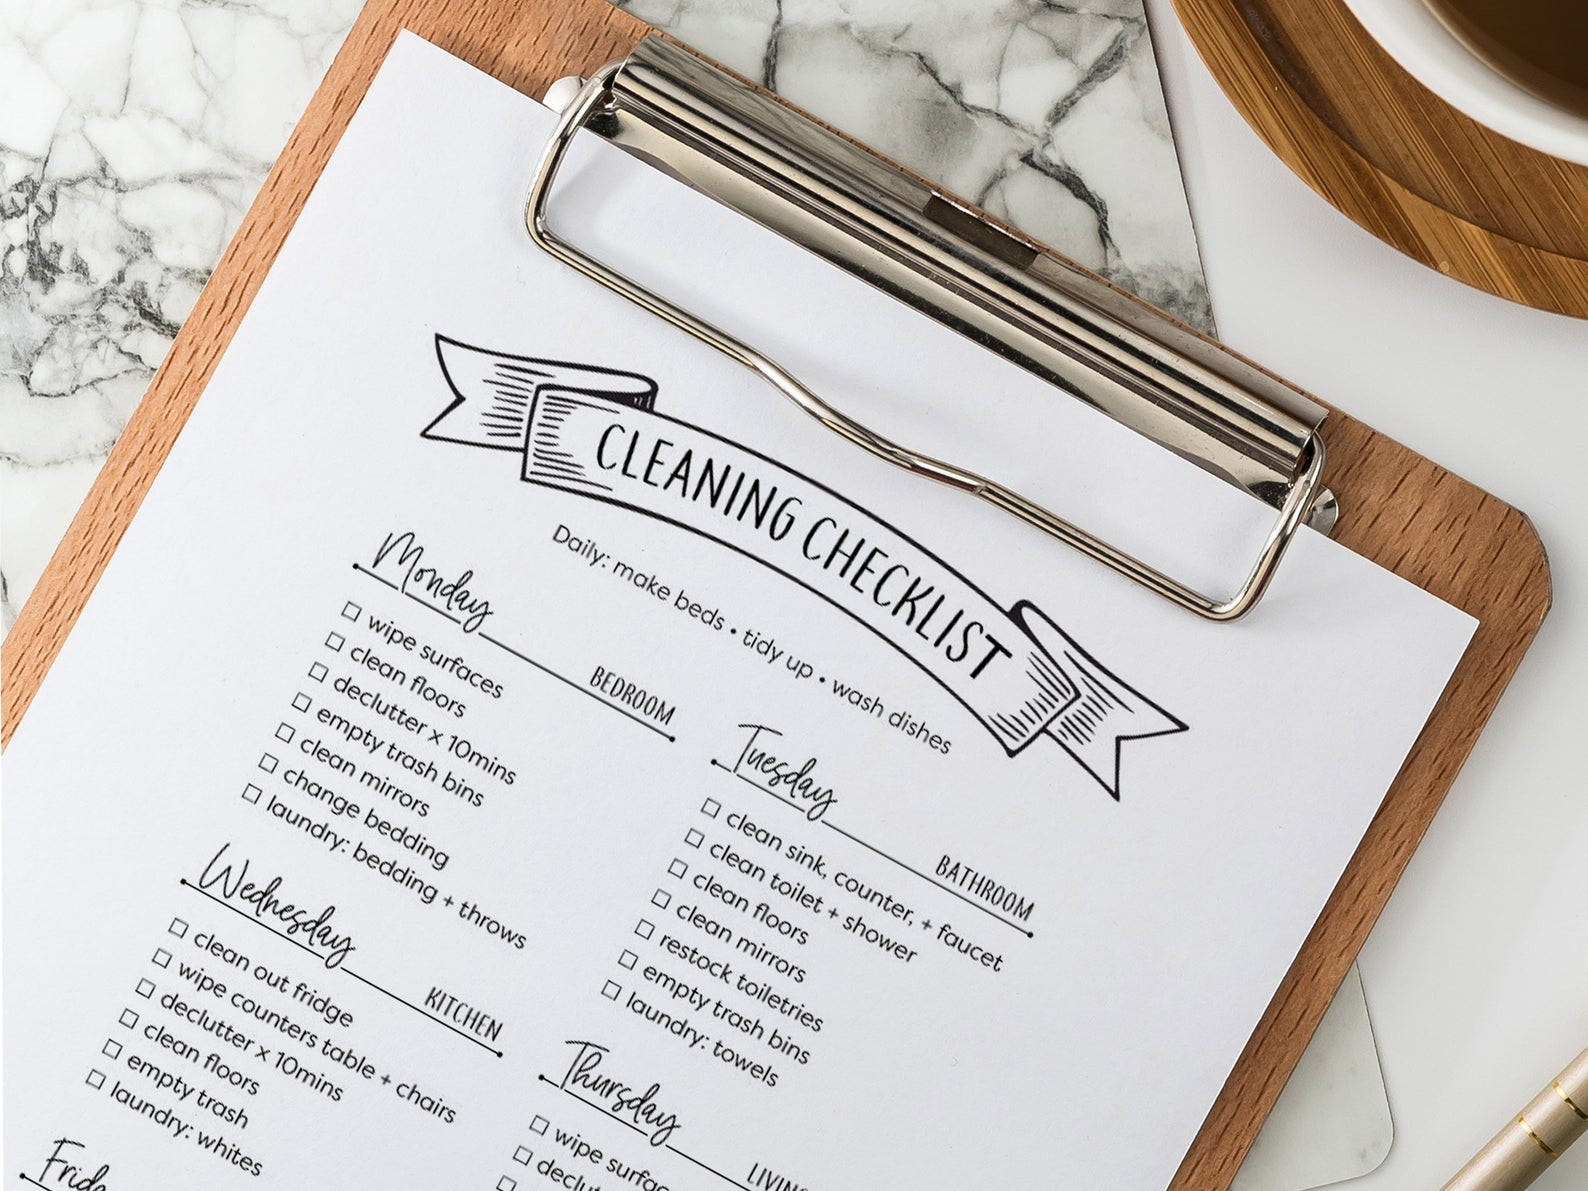 A printable of a cleaning checklist with tasks like